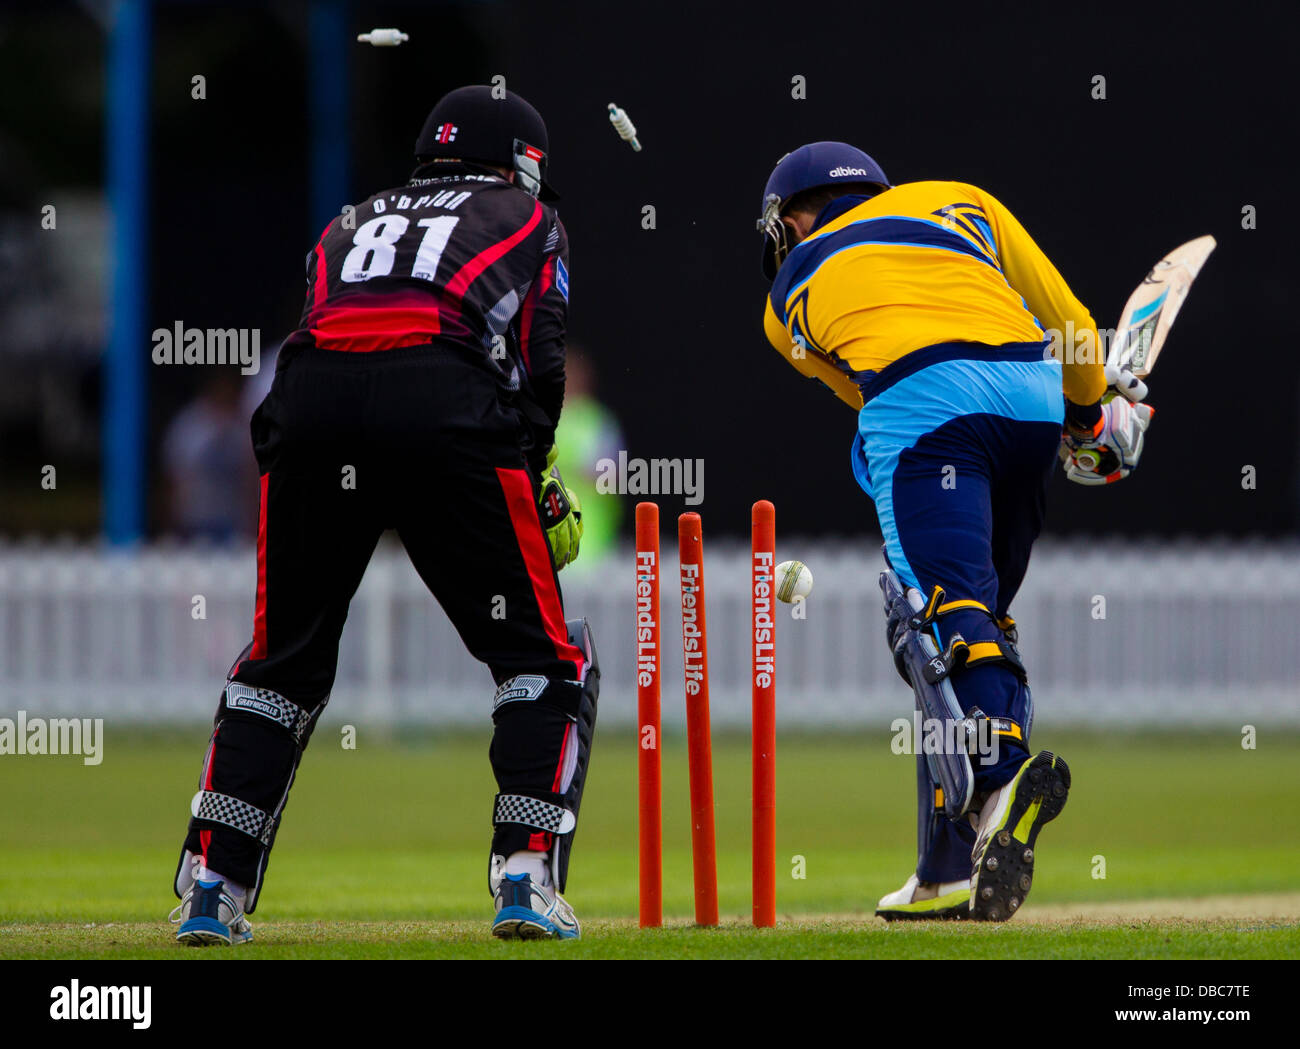 Leicester, UK. Sunday 28th July 2013.  Yorkshire's Richard Pyrah is bowled by Leicestershire's Shakib Al - Stock Image